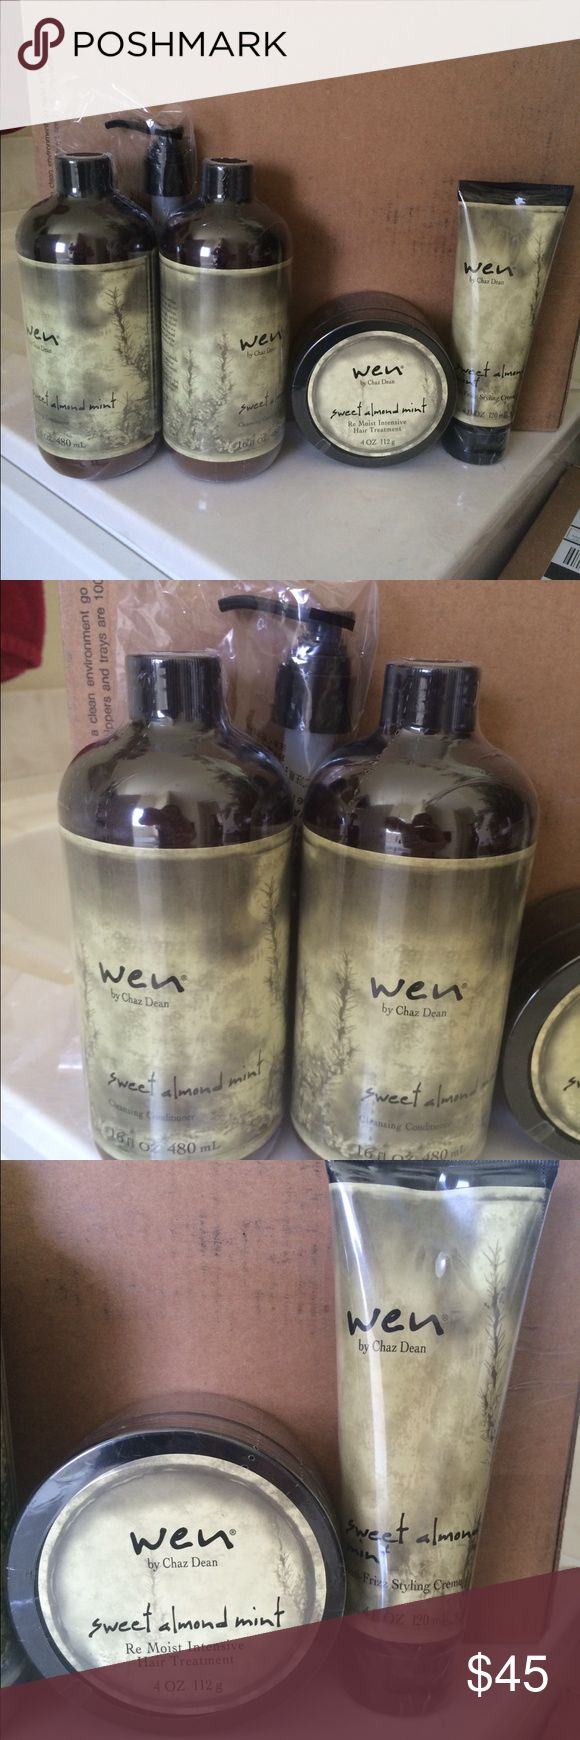 Only 1 left  Wen Hair Care 🎉🎊🎉🎊🎊 🎉🎉🎉🎉 Wen hair care. You get 2 cleansing conditioner (sweet almond mint) frizz control (sweet almond mint) intensive conditioner (sweet almond mint)  Love this product but I have enough to last a lifetime 😃 Other